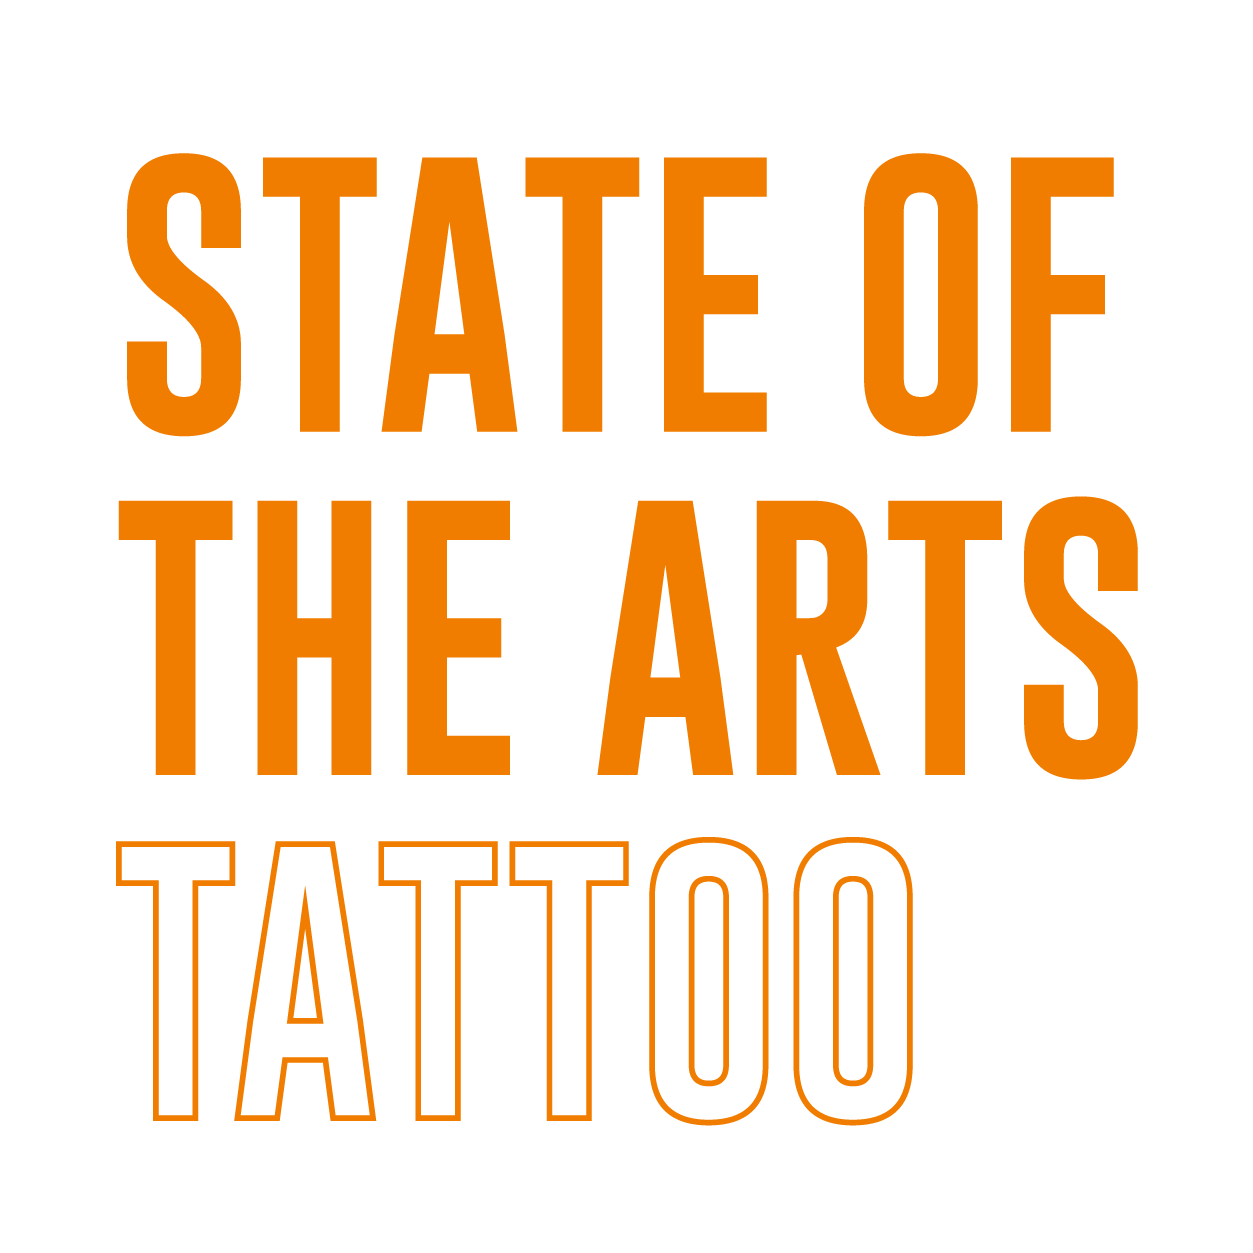 State Of The Arts Tattoos